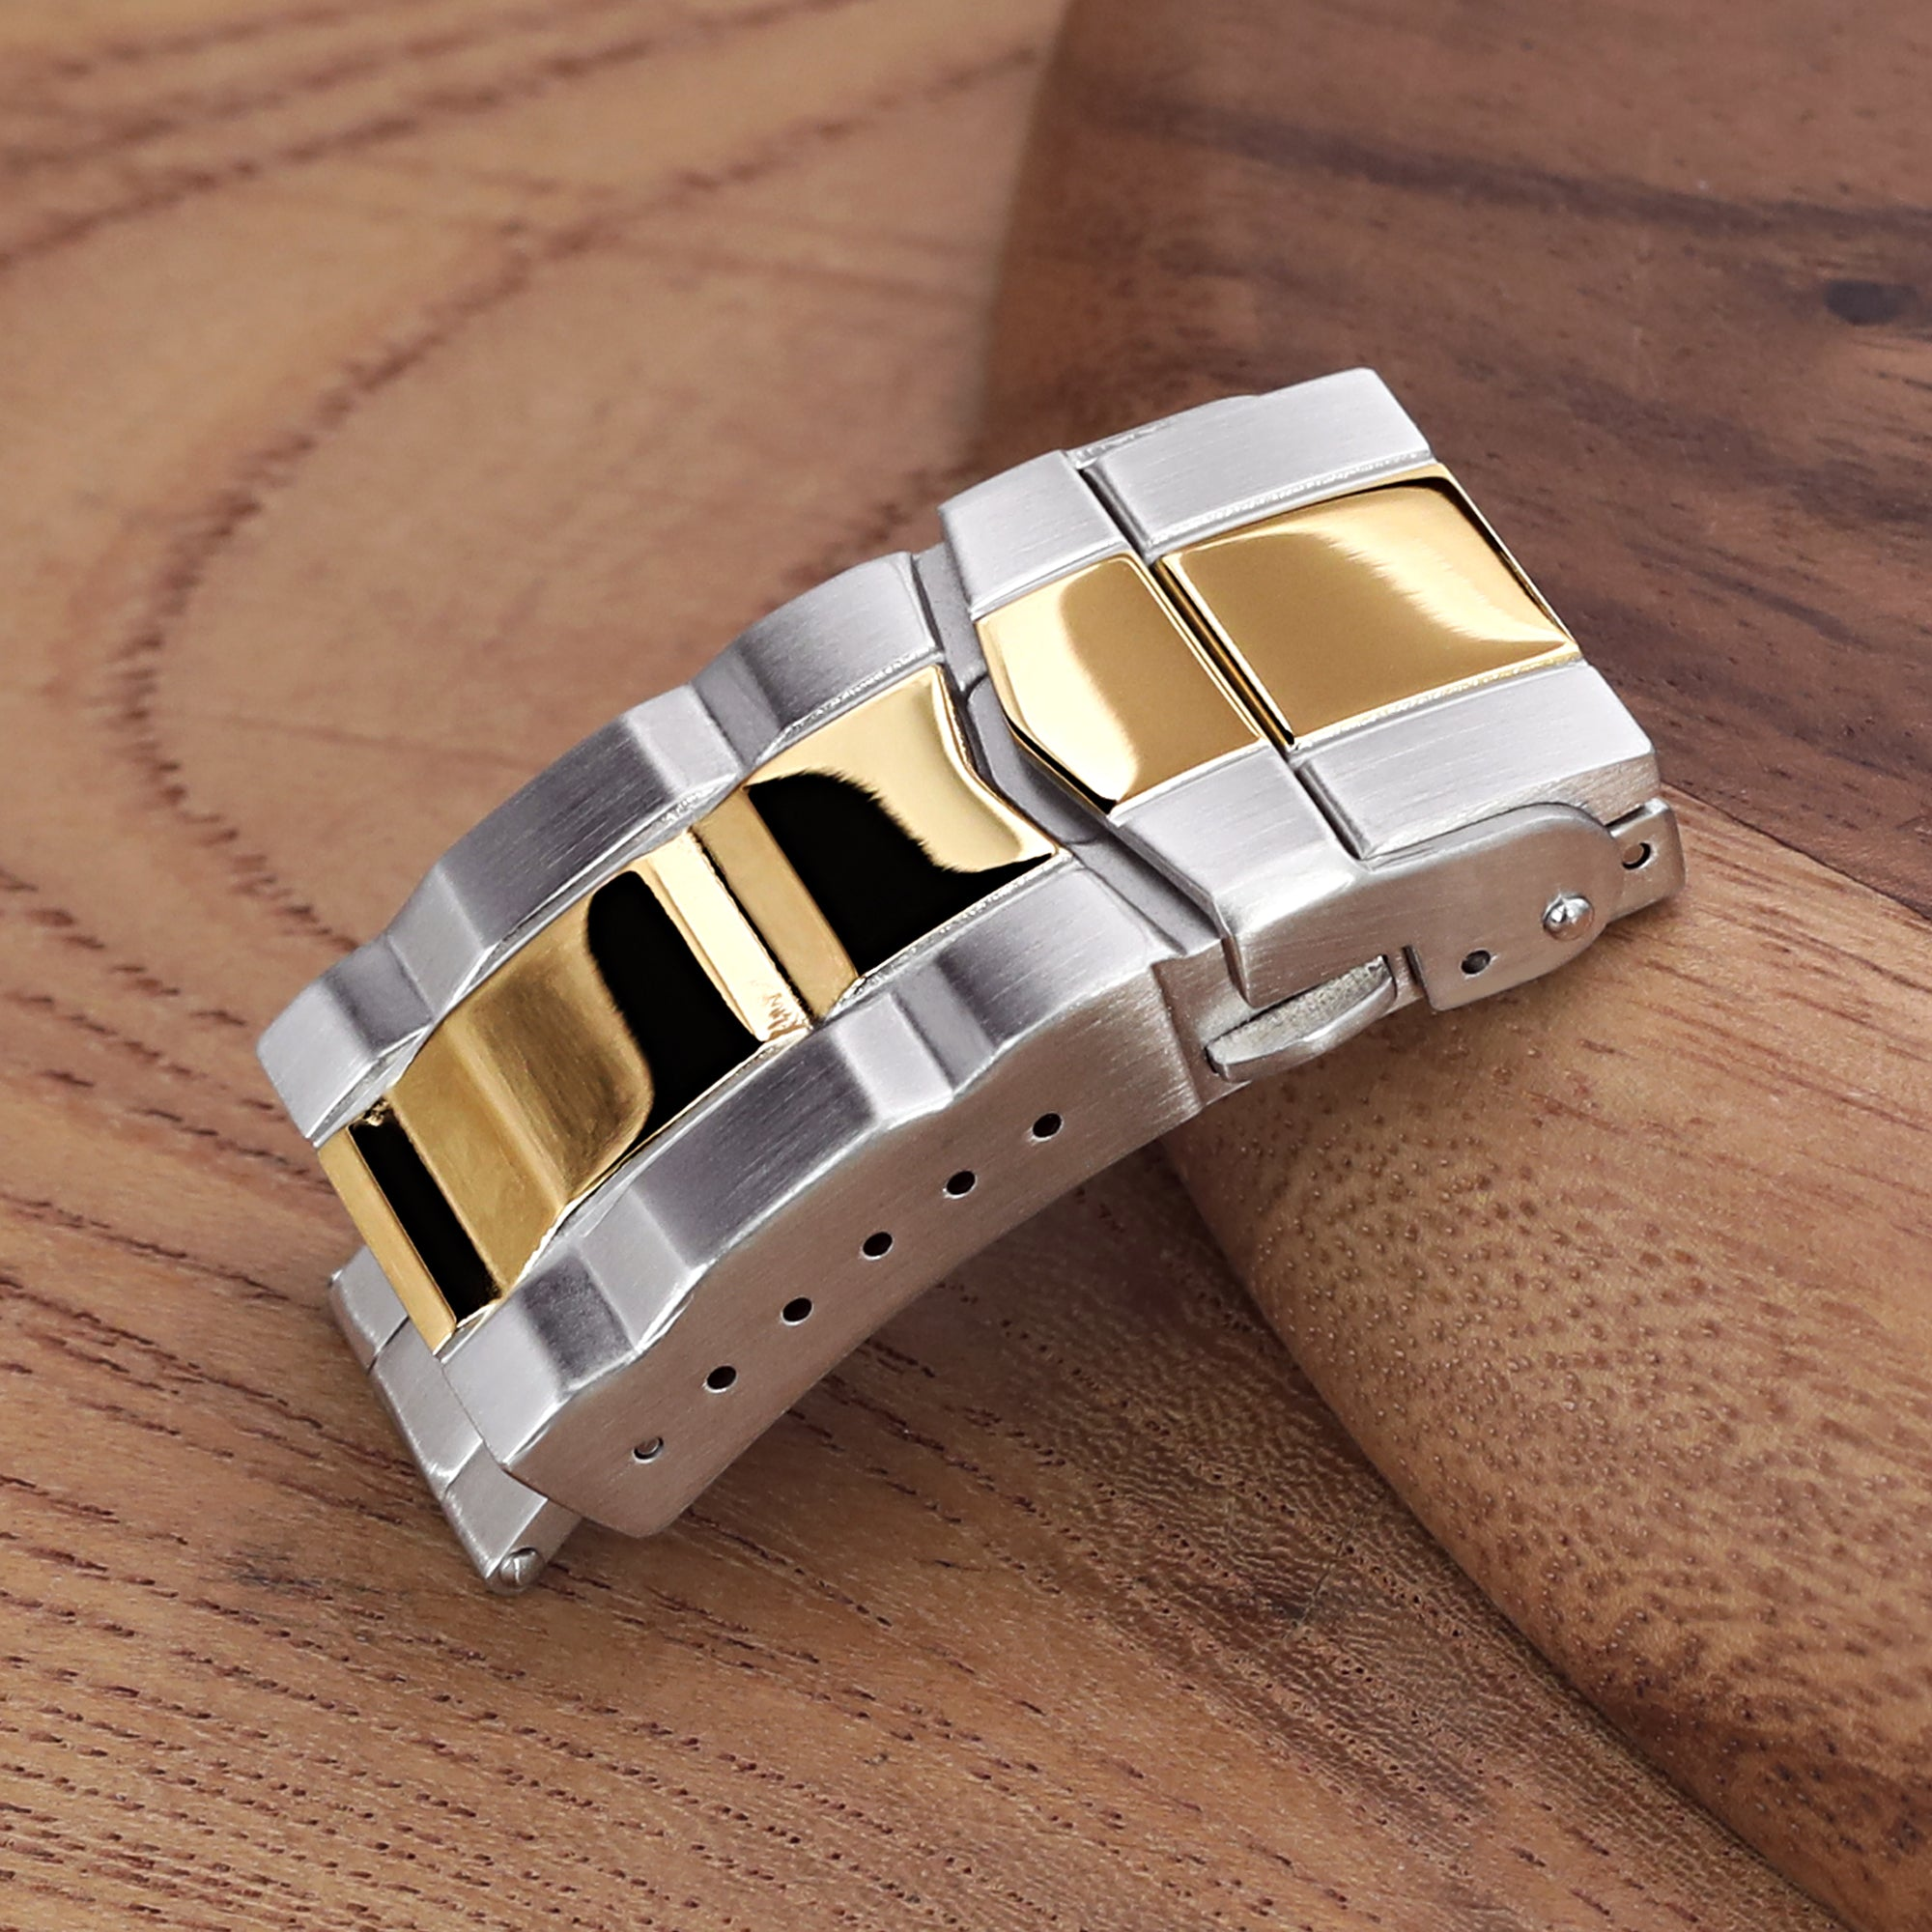 18mm Solid 316L Stainless Steel Double Locks SUB Diver Clasp Button Control 2-tone IP Polished Gold Strapcode Buckles